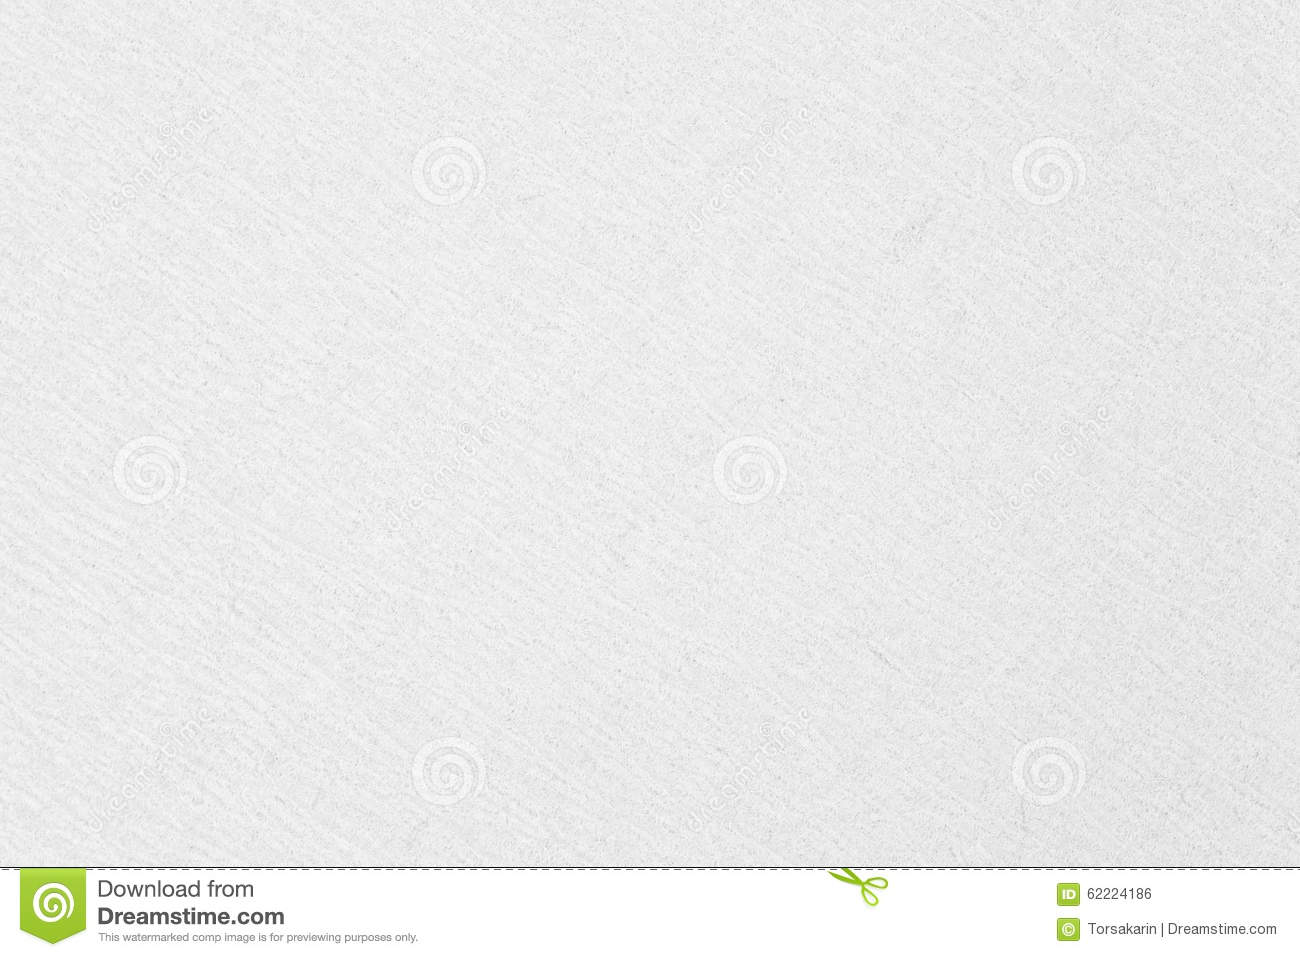 Jpg Texture Background Free Stock Photos Download 105 545: Paper Note Texture And Seamless Background Stock Photo